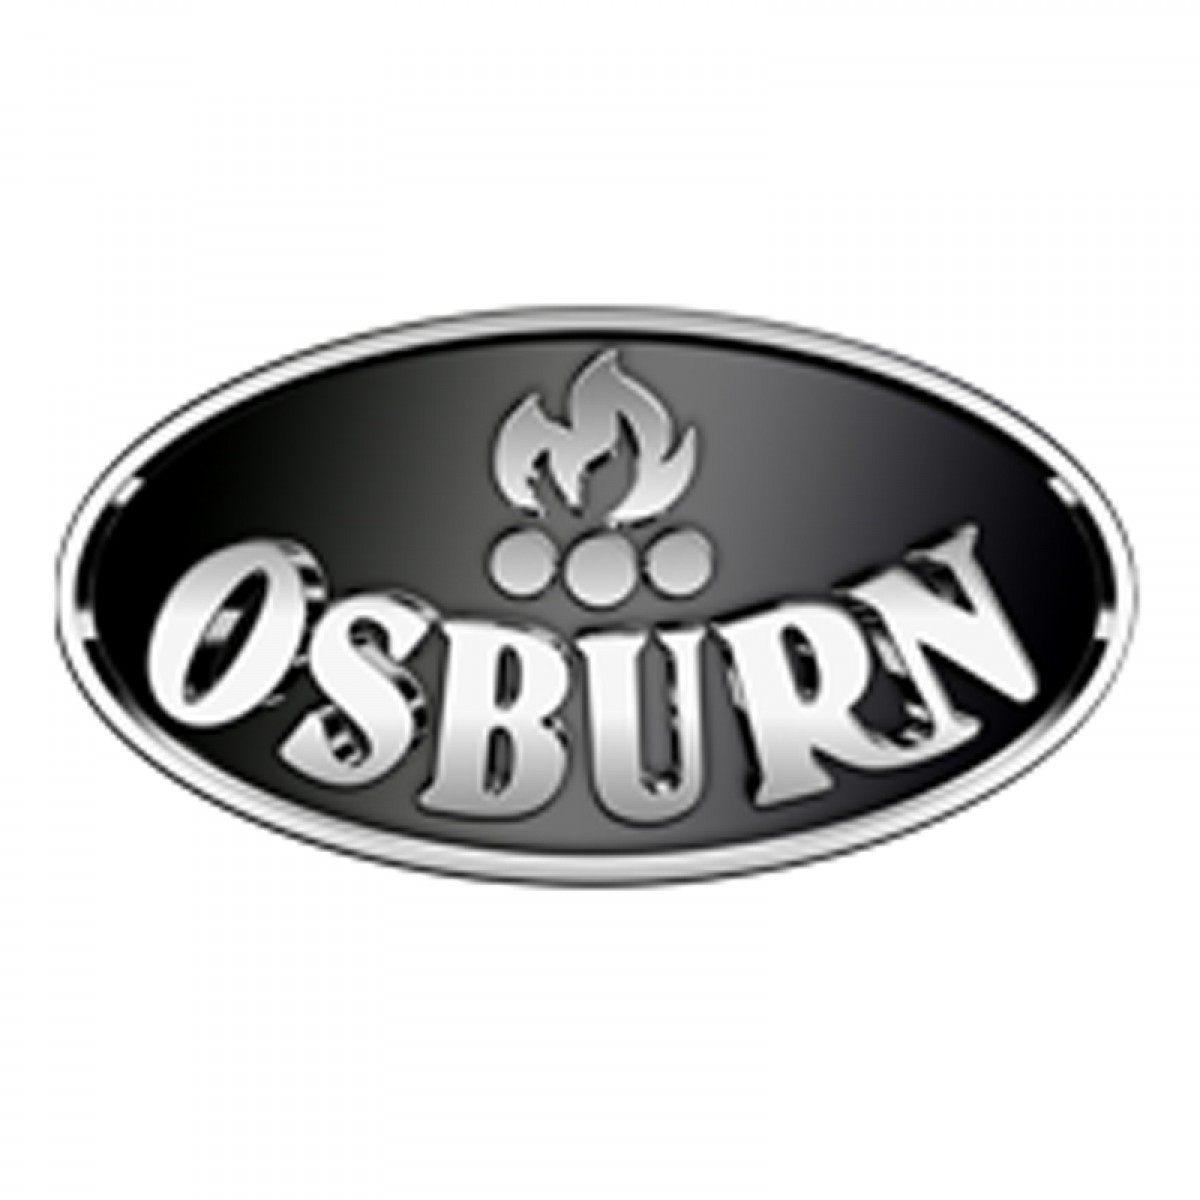 Osburn AC07810 1/4 in X 1/2 in X 100 ft Black Fiberglass Gasket Box